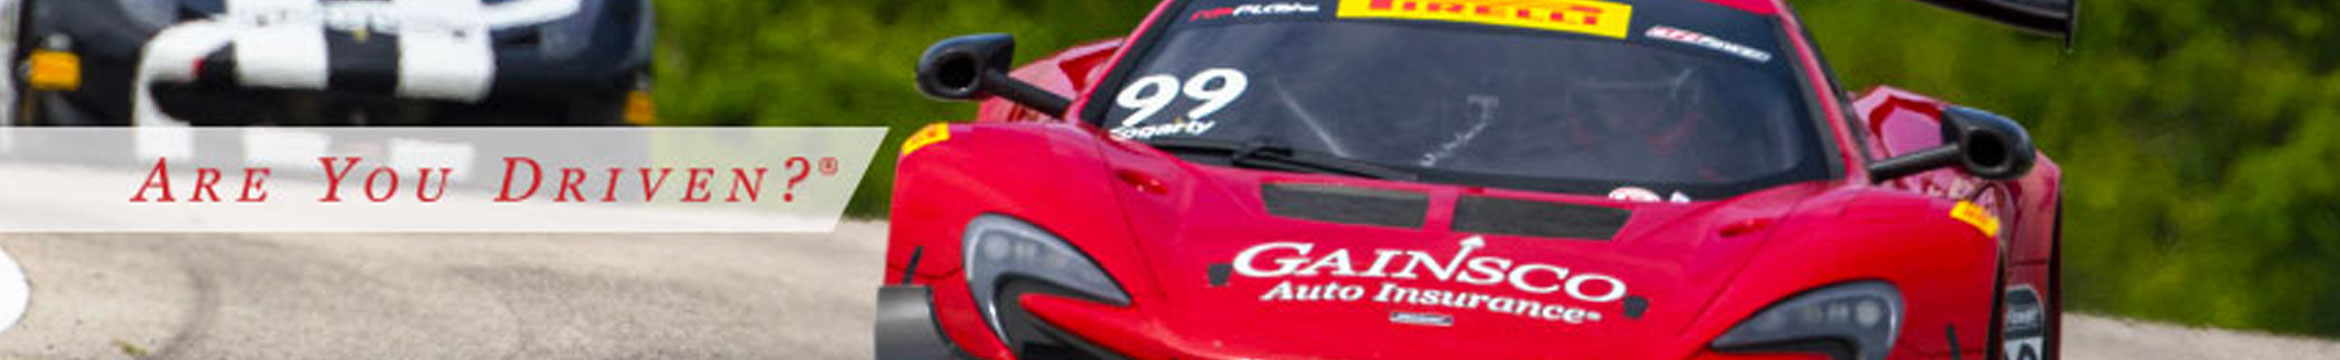 "Caption Text: ""Are you driven?"" Red racing car, with gainsco auto insurance decal on the hood. Gainsco banner image."